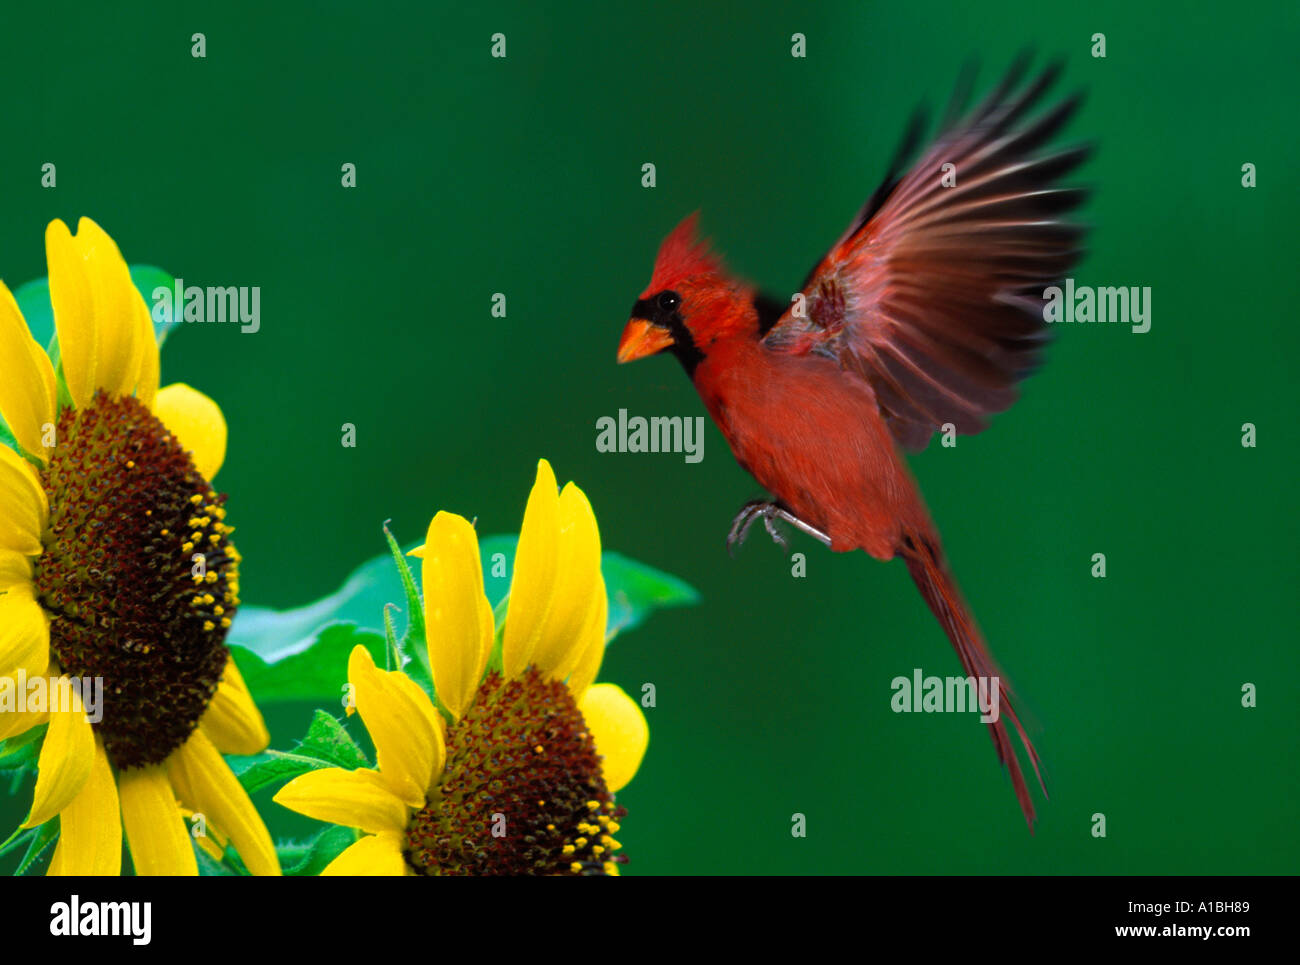 Male Northern Cardinal (Cardinalis cardinalis) flying in, wings outstretched, for landing on sunflower and seeds, Midwest USA - Stock Image